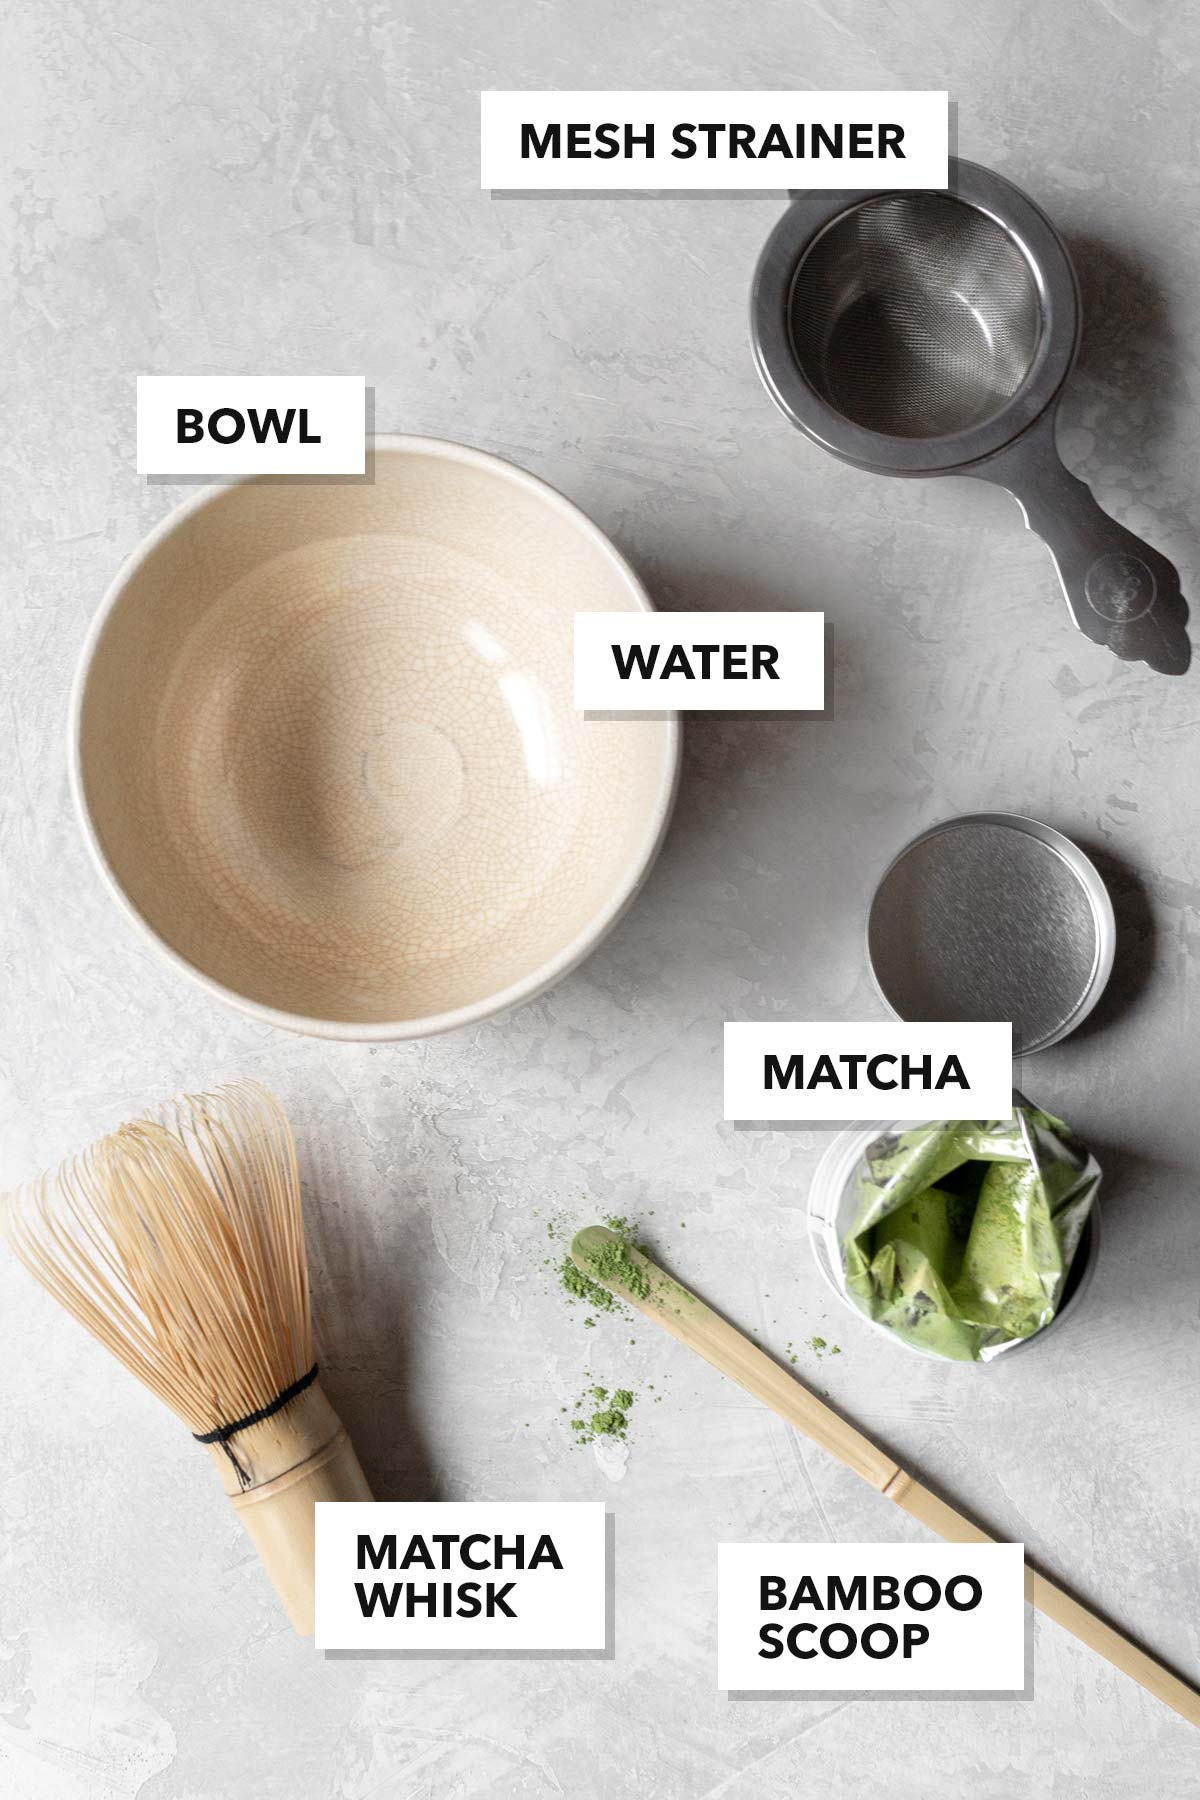 Matcha ingredients and tools.